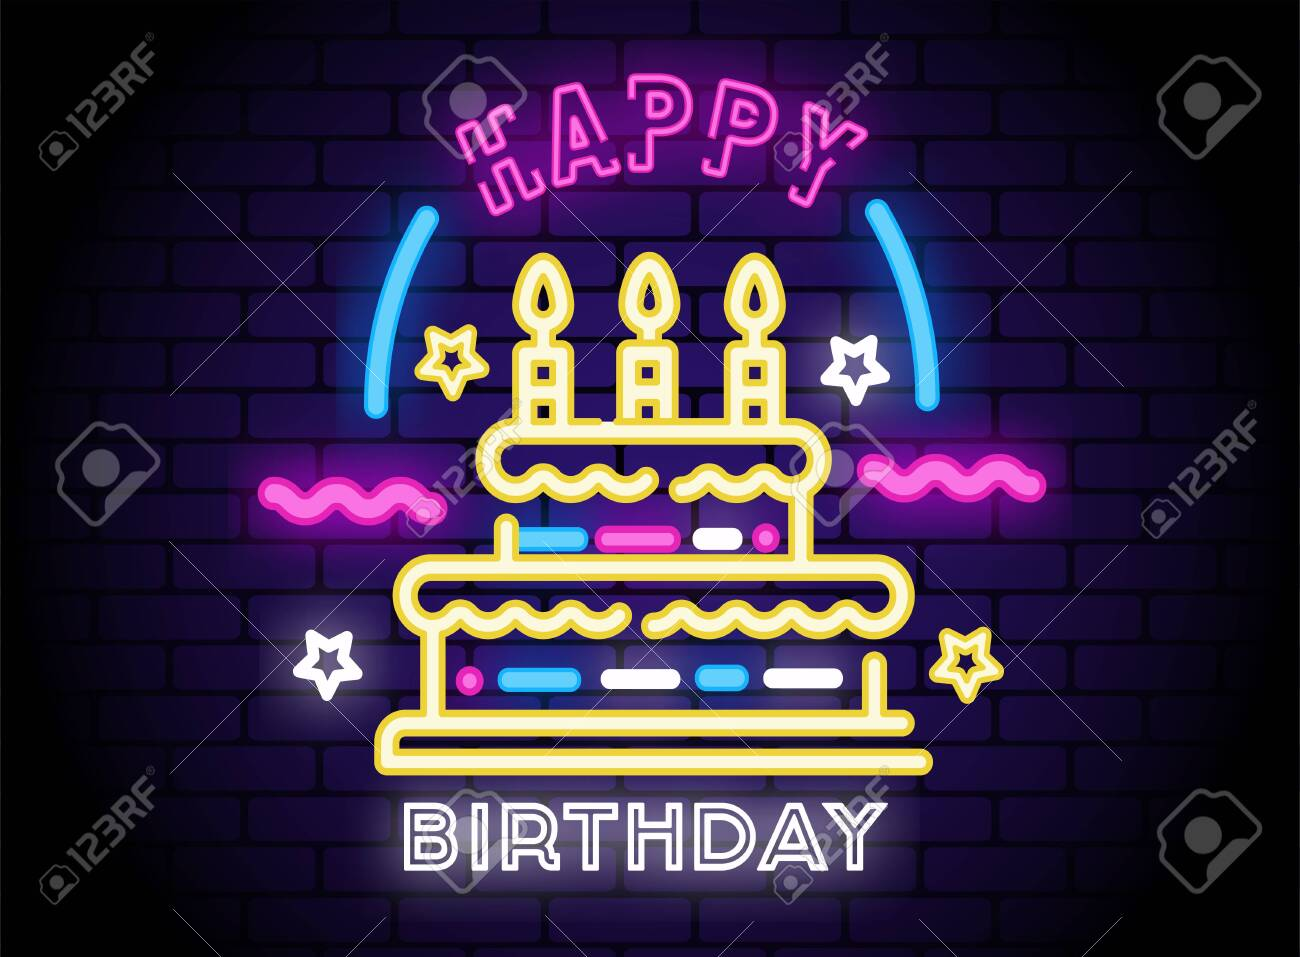 Awe Inspiring Happy Birthday Festive Neon Sign With Cake And Candles Shining Birthday Cards Printable Giouspongecafe Filternl